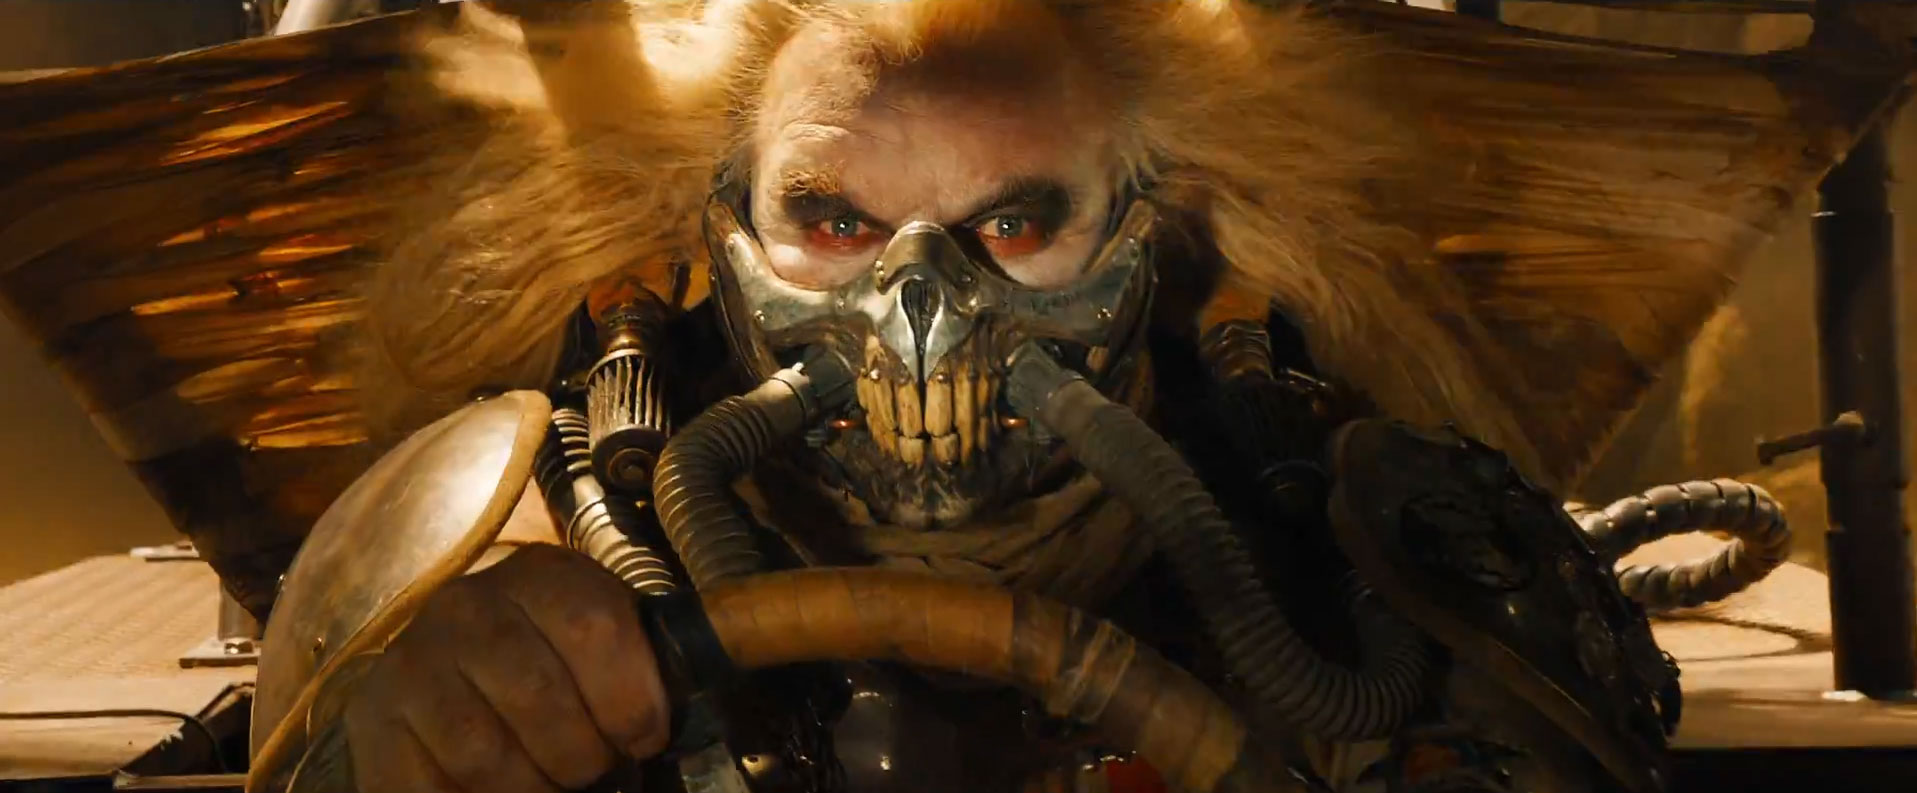 mad max fury road explained a guide to george miller s wasteland insanity overmental powder coating price guide powder coating guide bridge